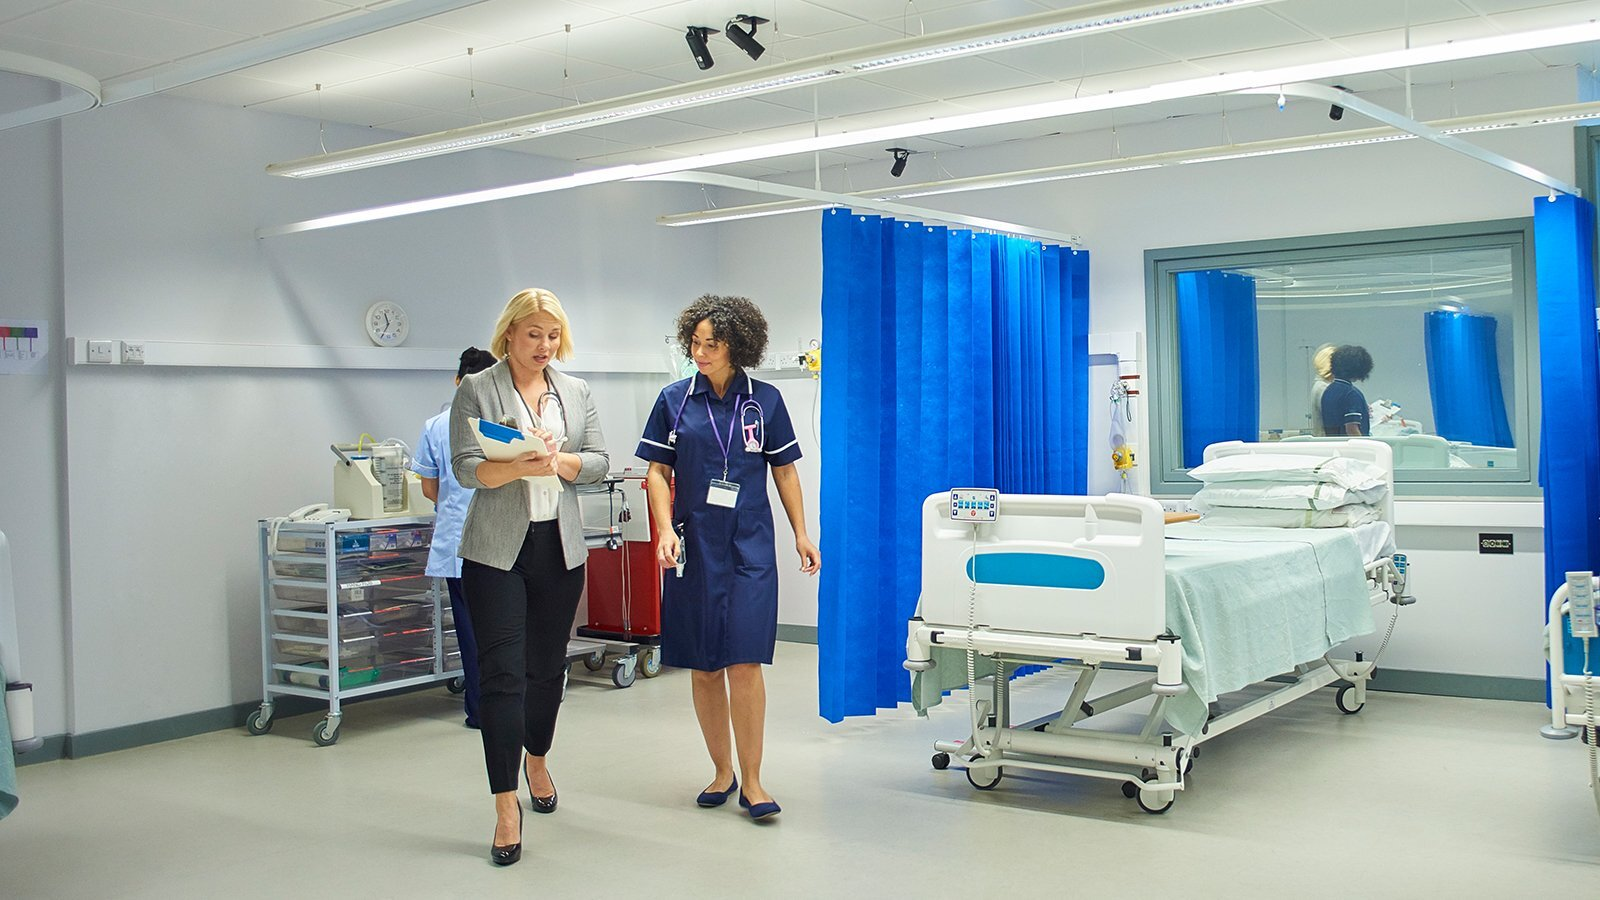 A large hospital room with healthcare professionals and a patient in a hospital bed